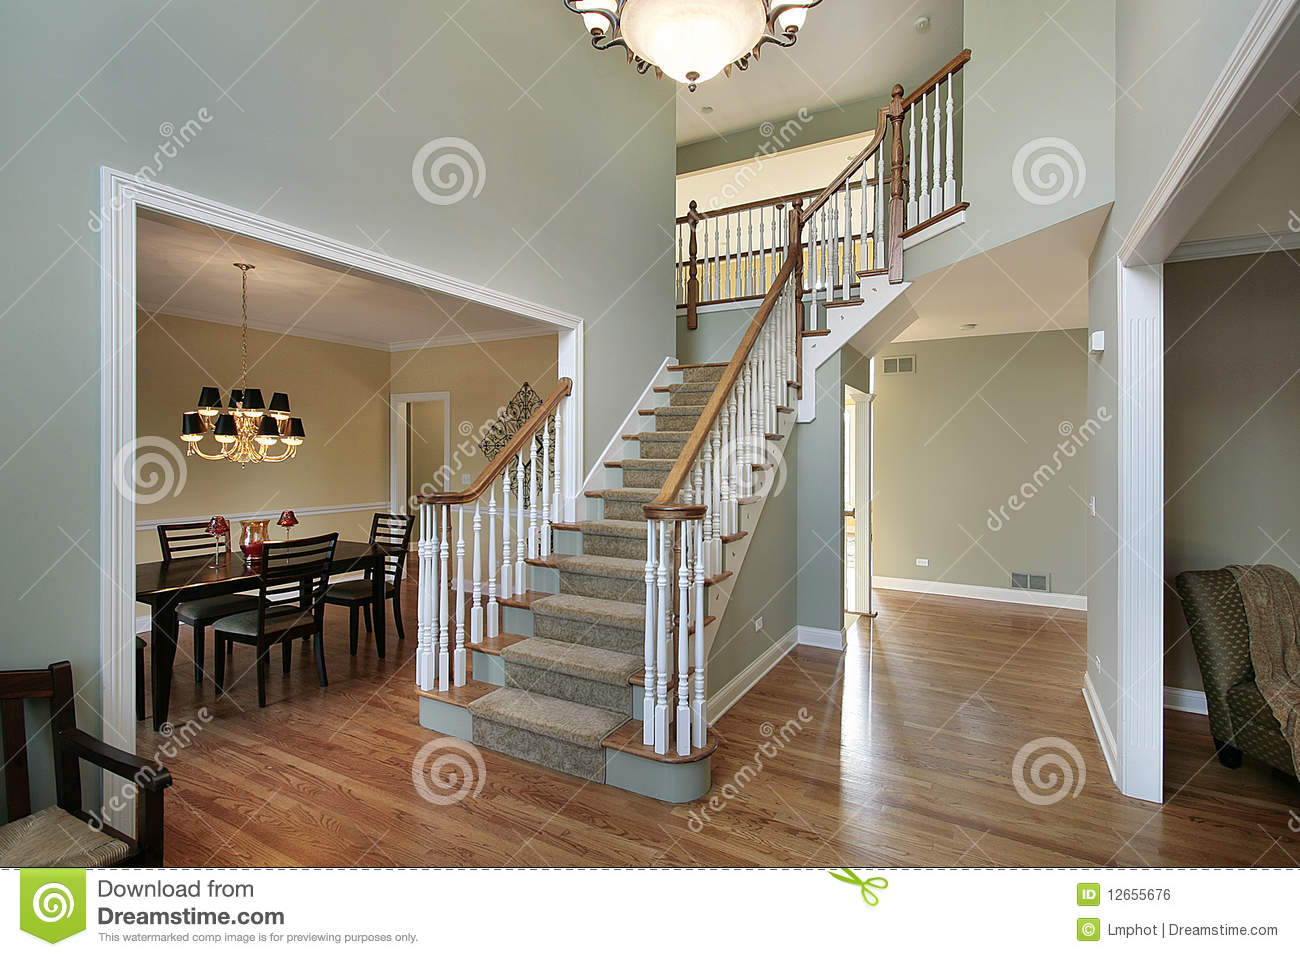 Foyer Clipart : Foyer in luxury home royalty free stock image